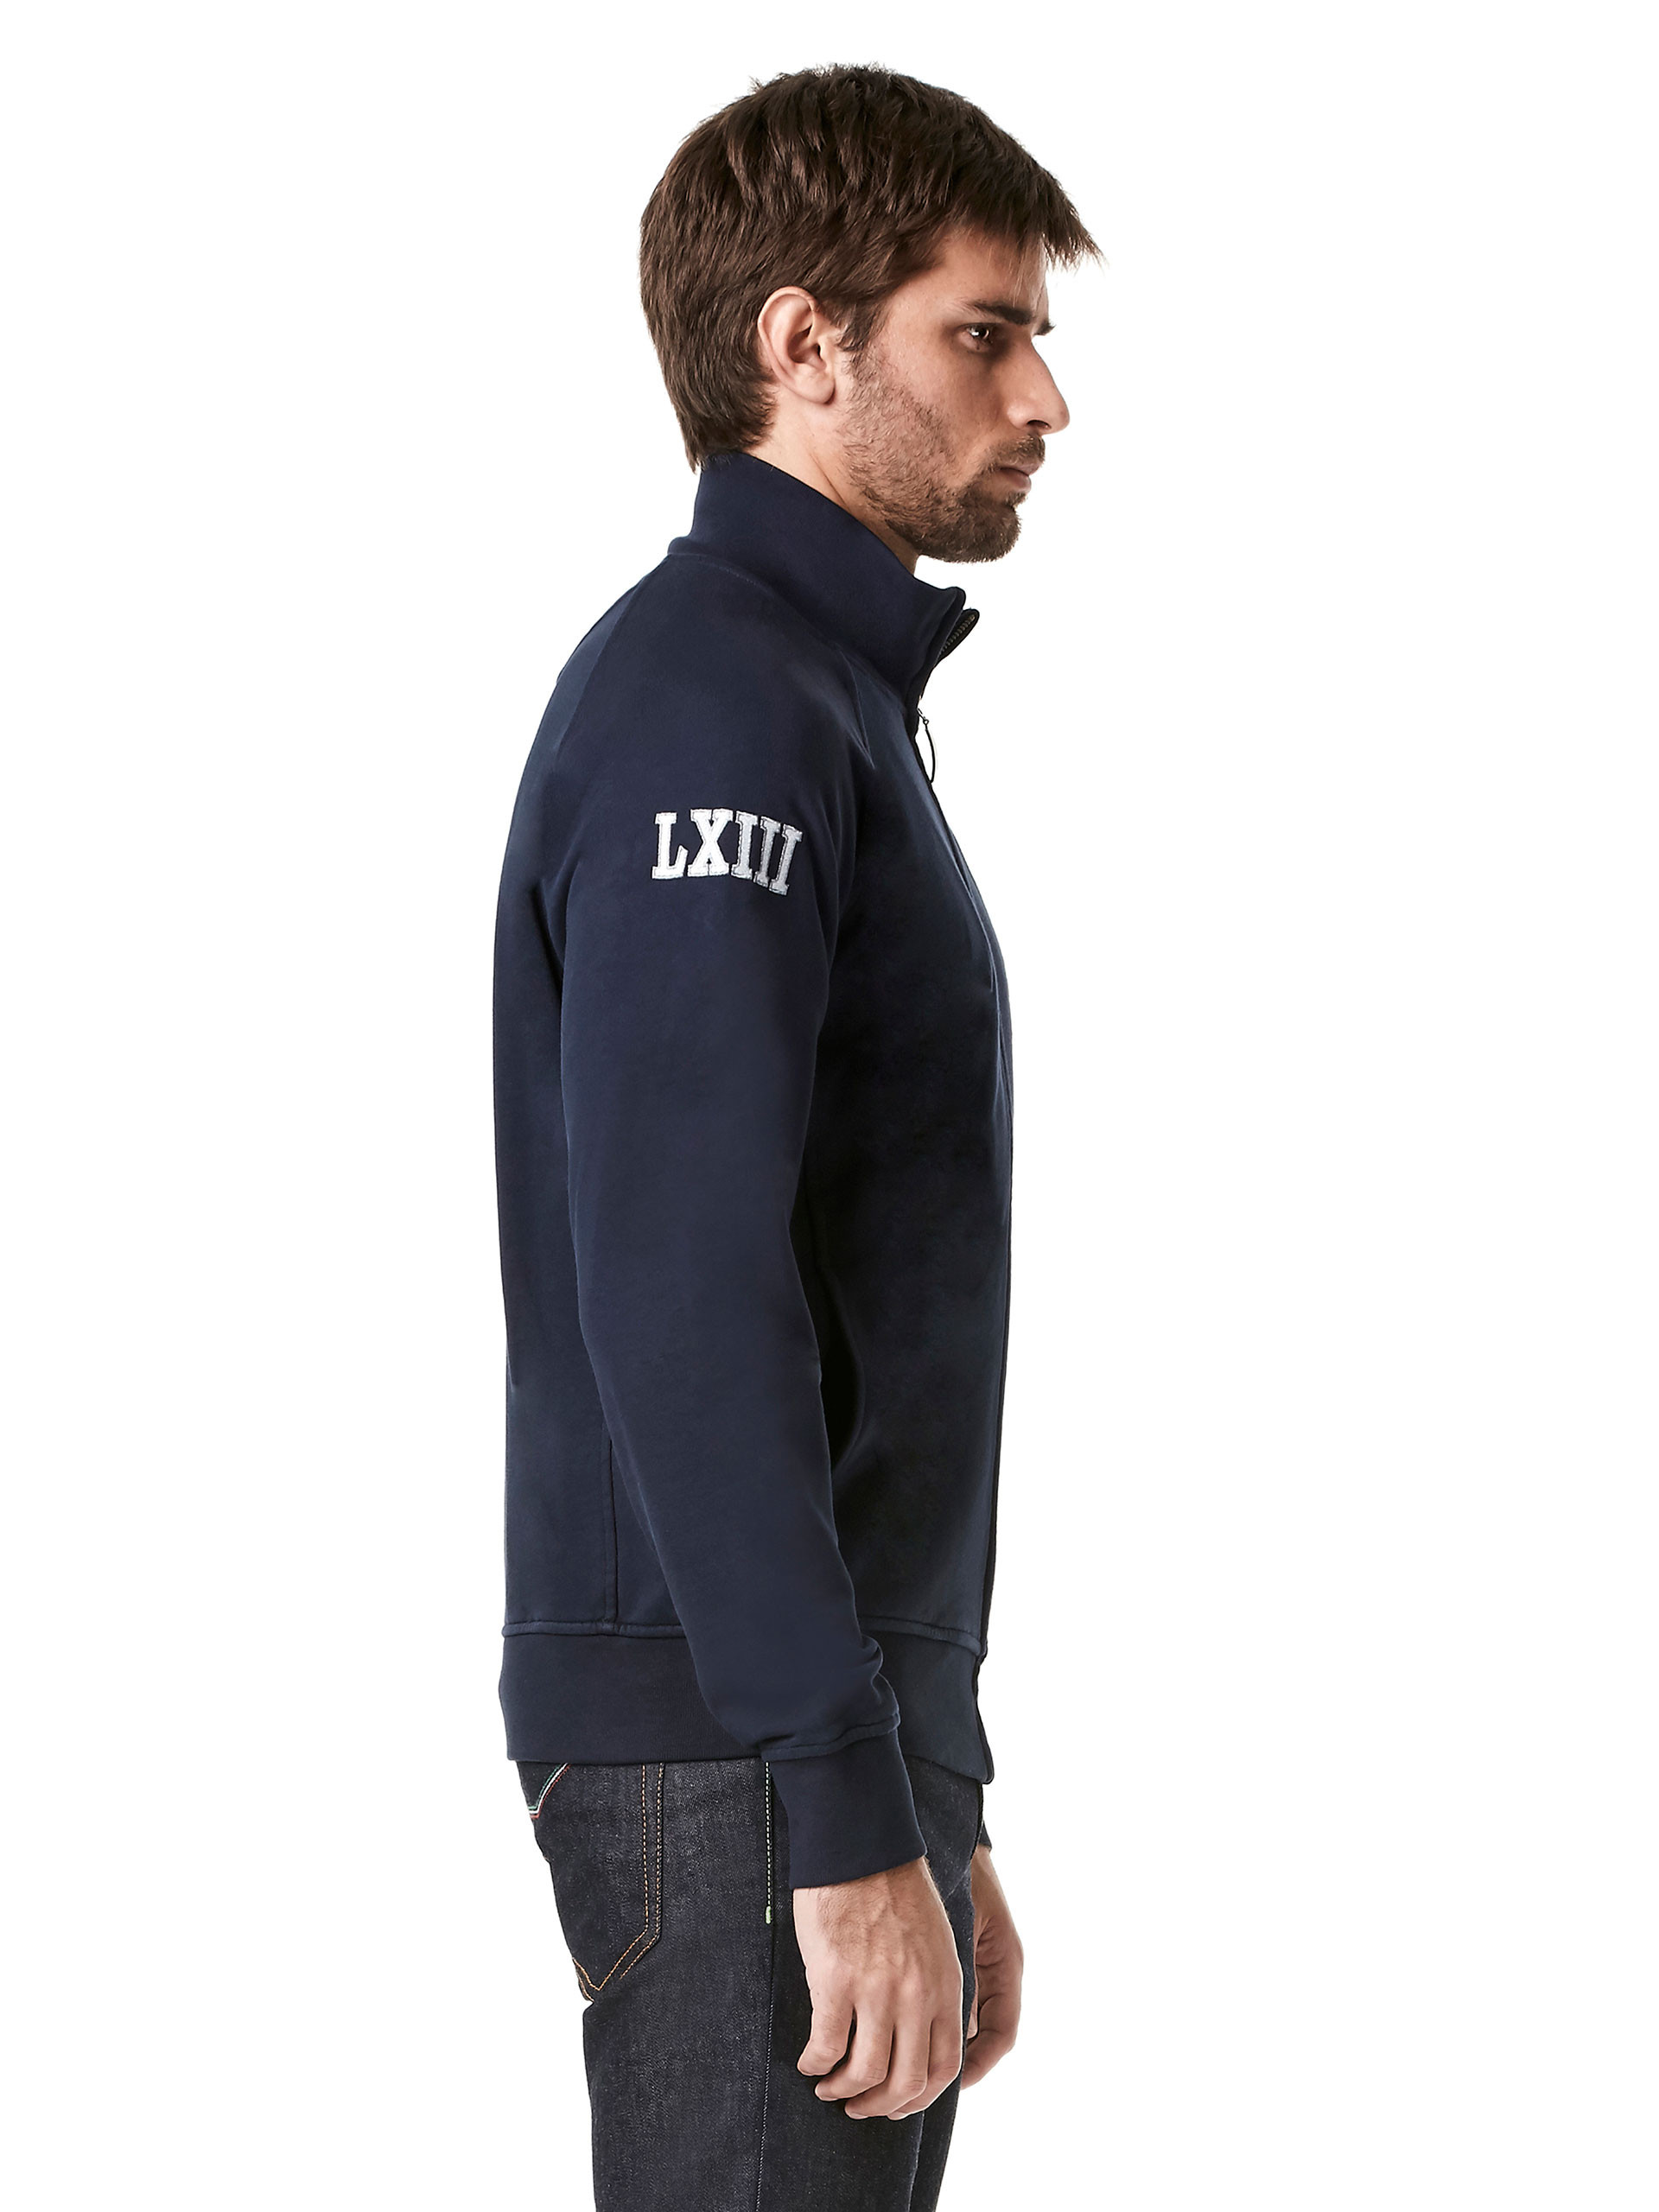 Men's Special Edition Bull LXIII sweatshirt